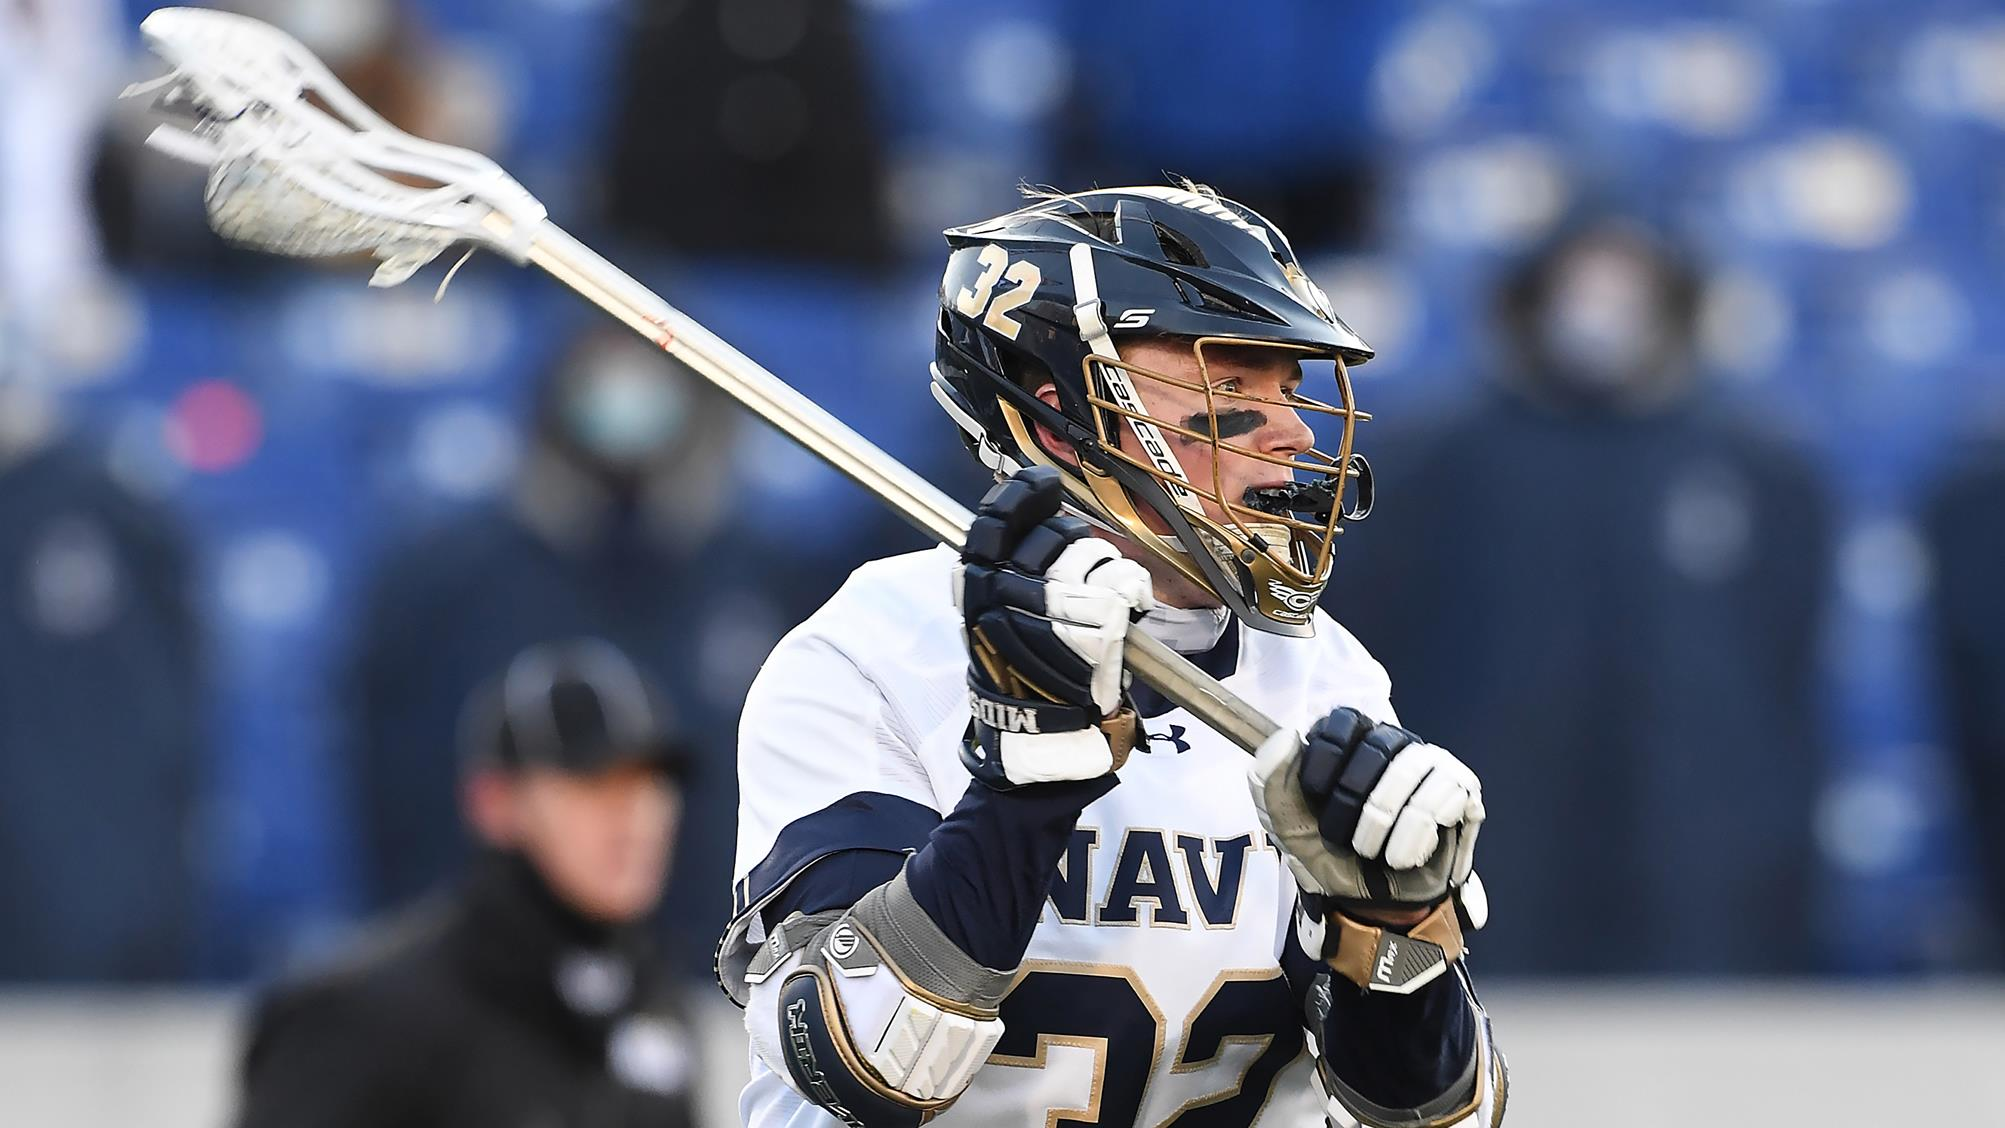 Undefeated Navy To Meet League Favorite Loyola In Televised Lacrosse Game Naval Academy Athletics